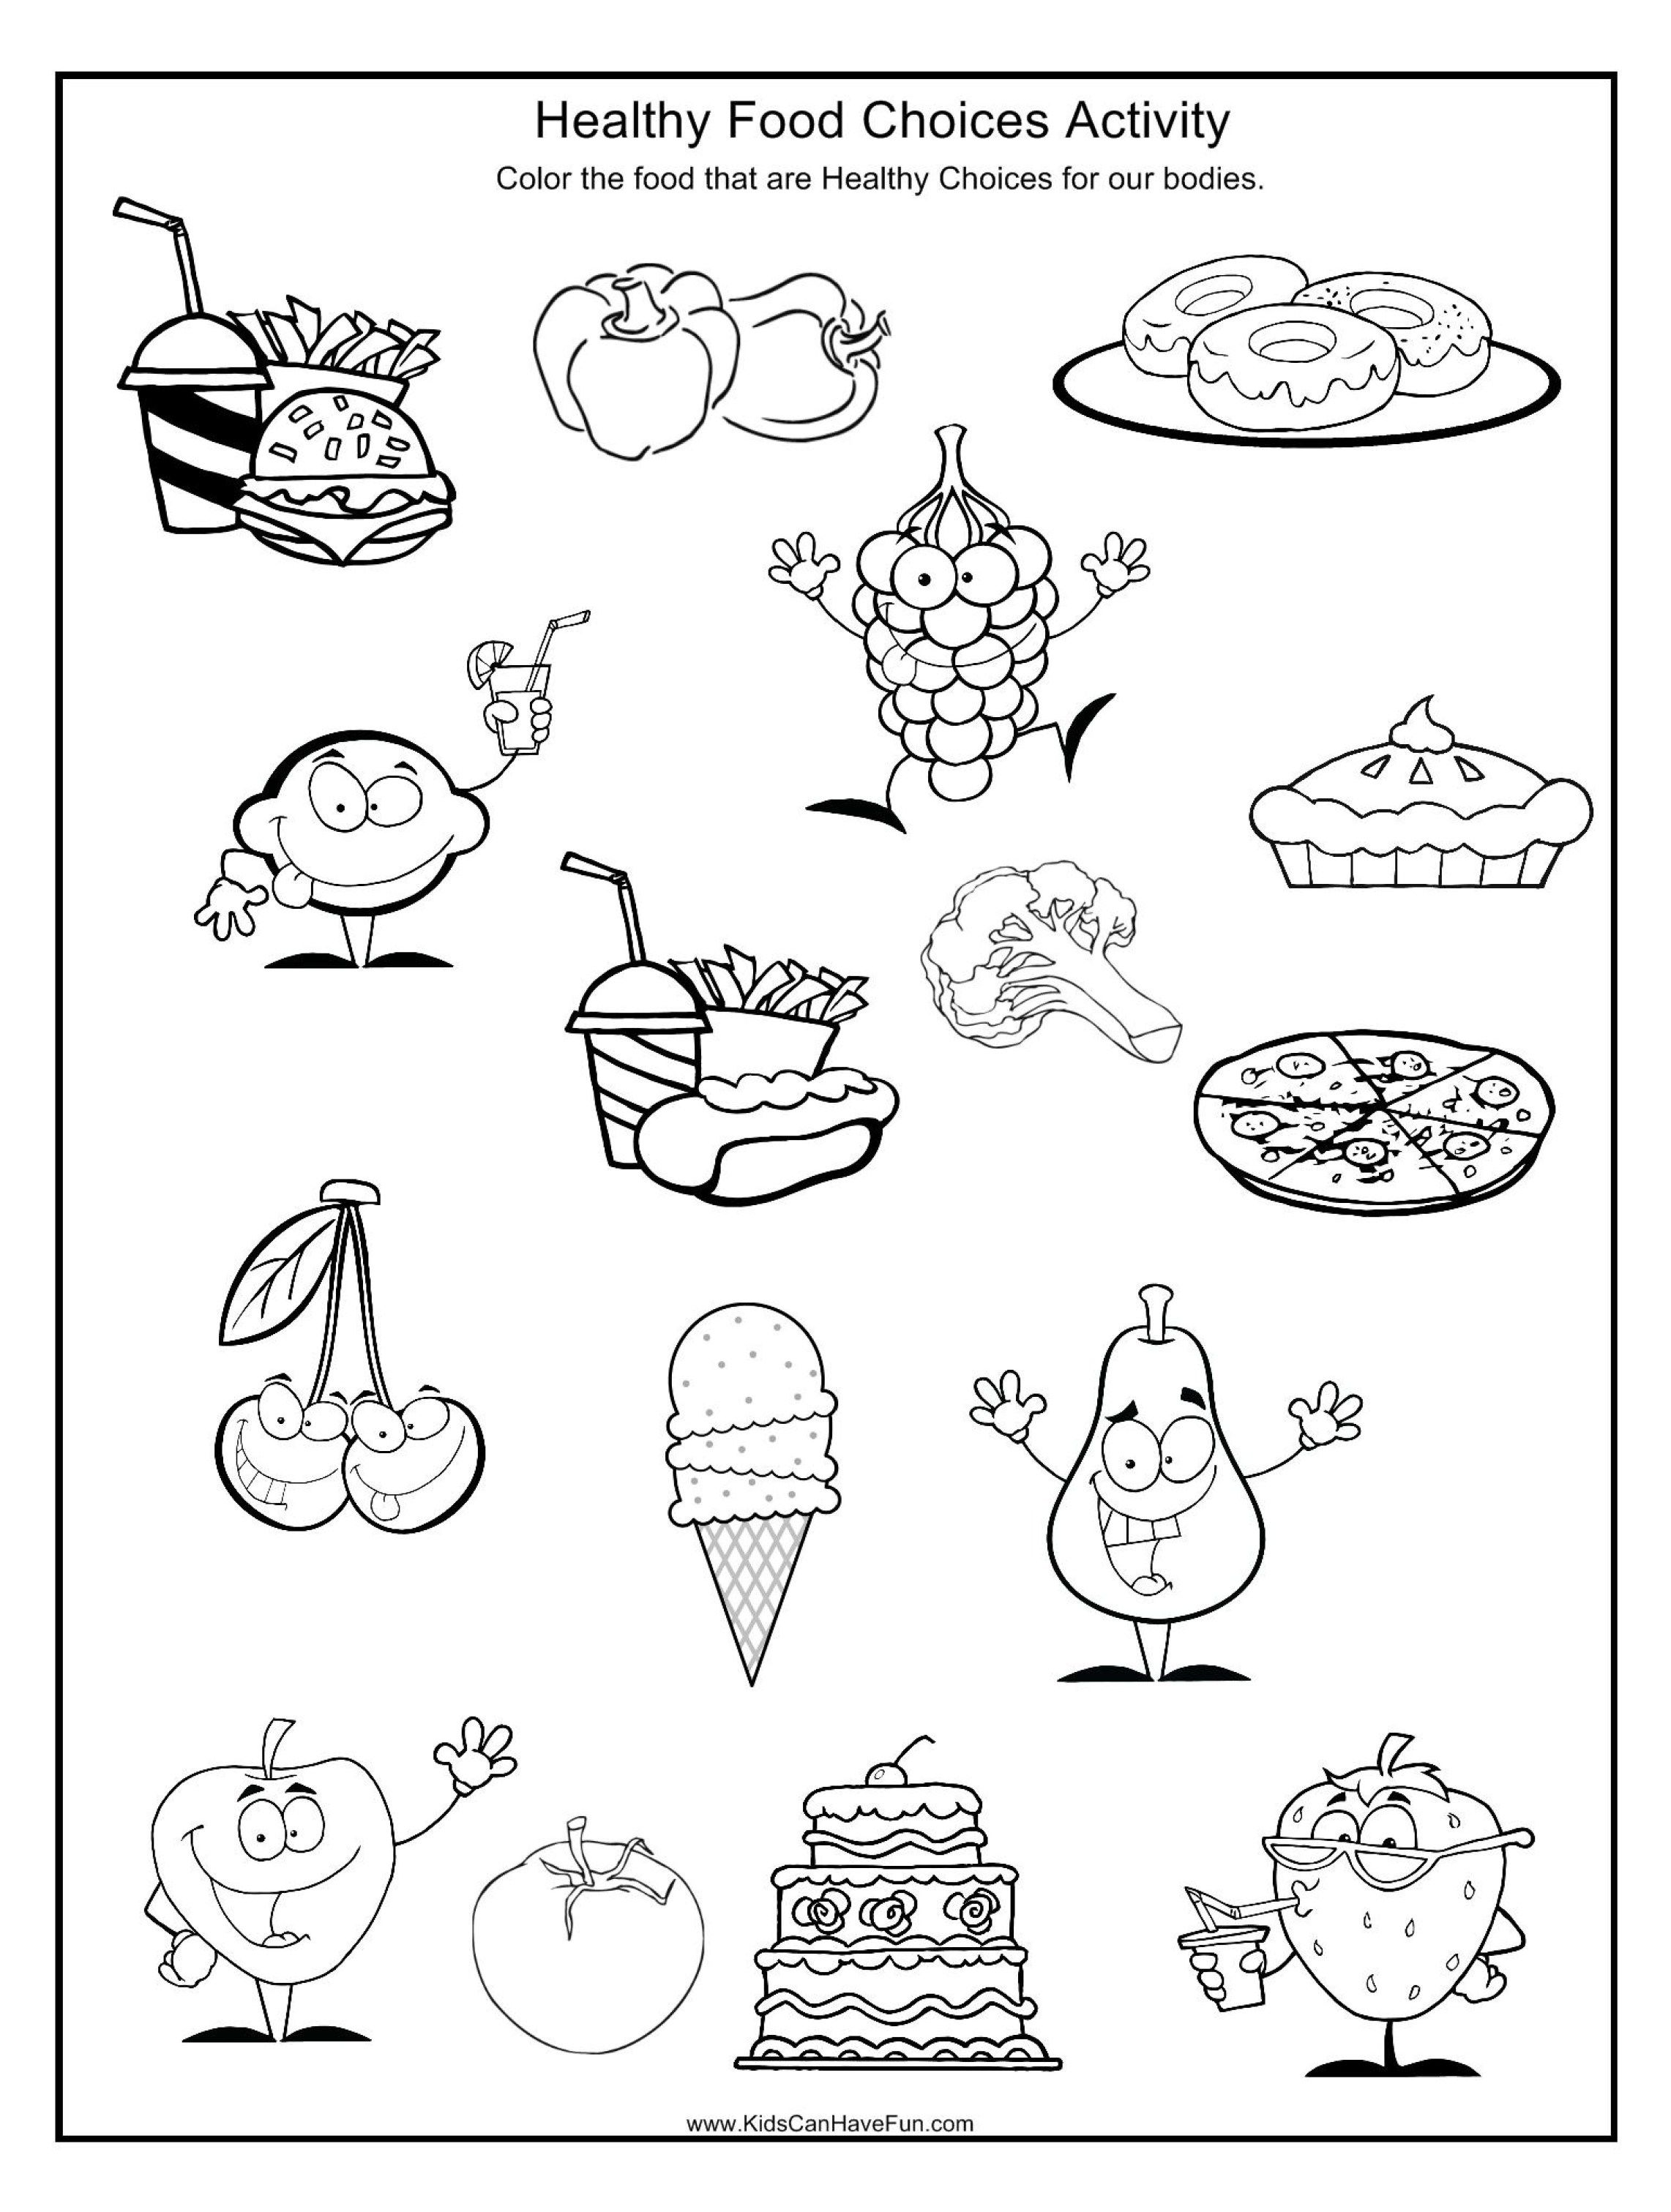 Healthy Food Coloring Pages Unique Dinner Food Coloring Pages Viranculture Davemelillo Com Healthy Habits For Kids Food Coloring Pages Healthy Food Pictures